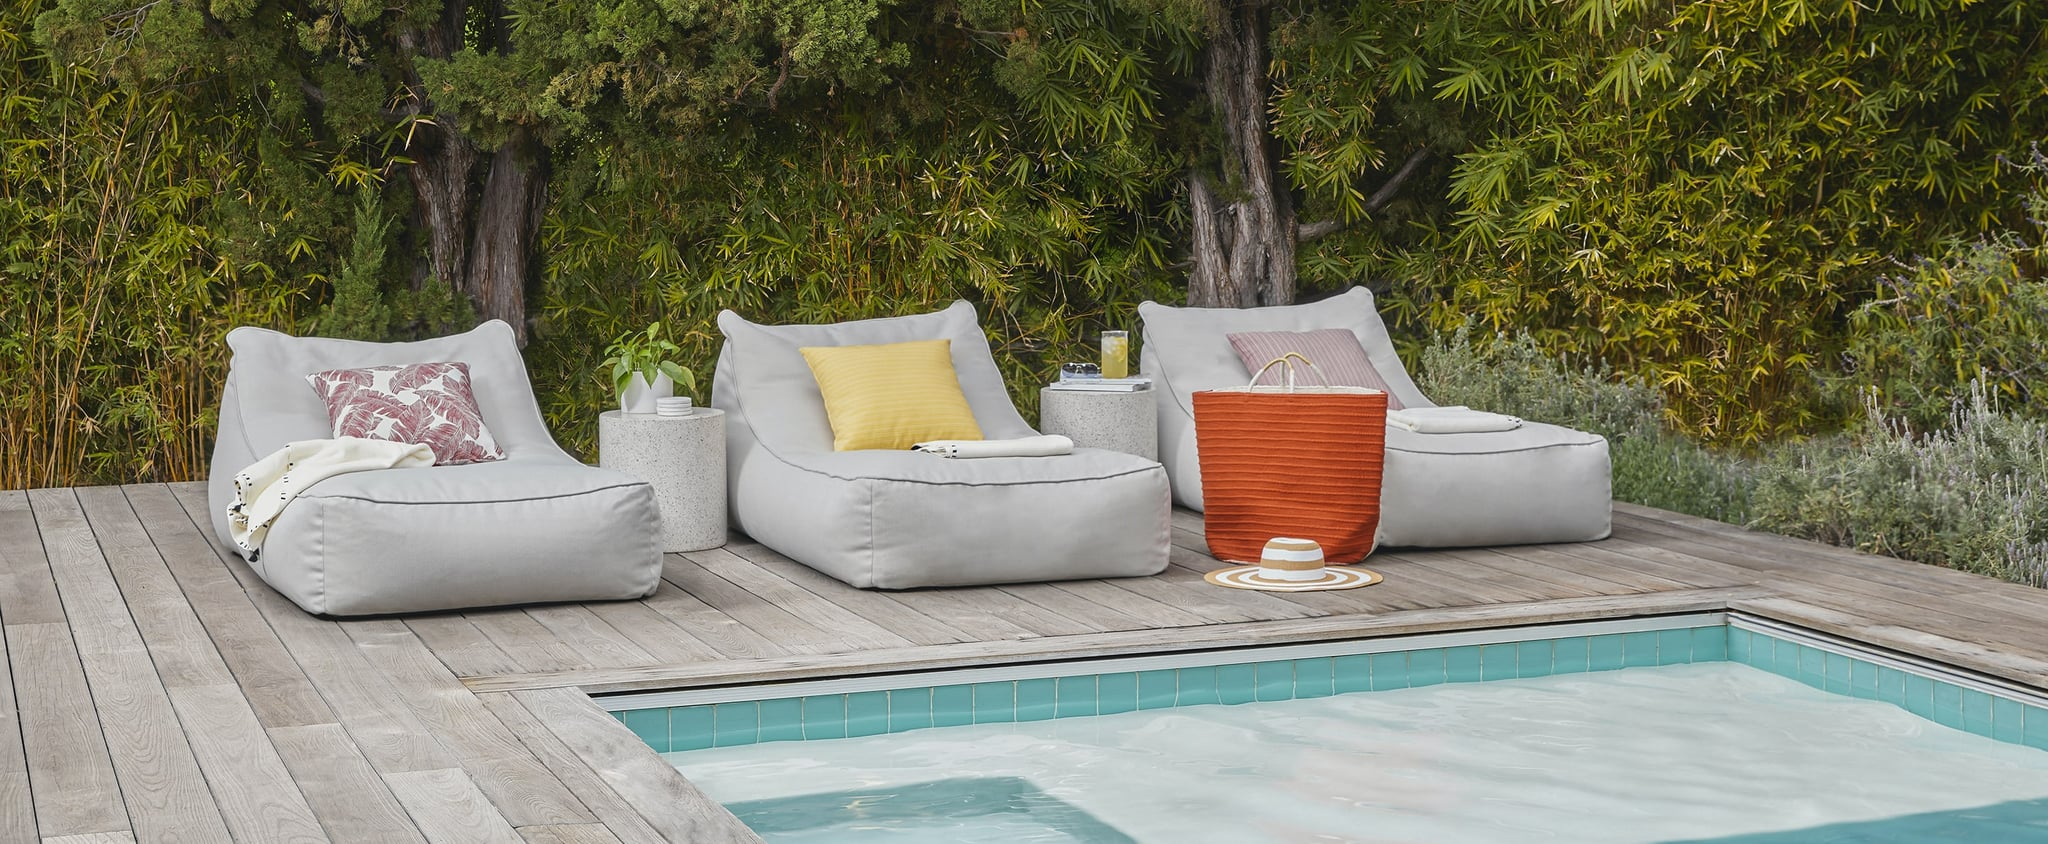 The Best Memorial Day Sales and Deals 2020